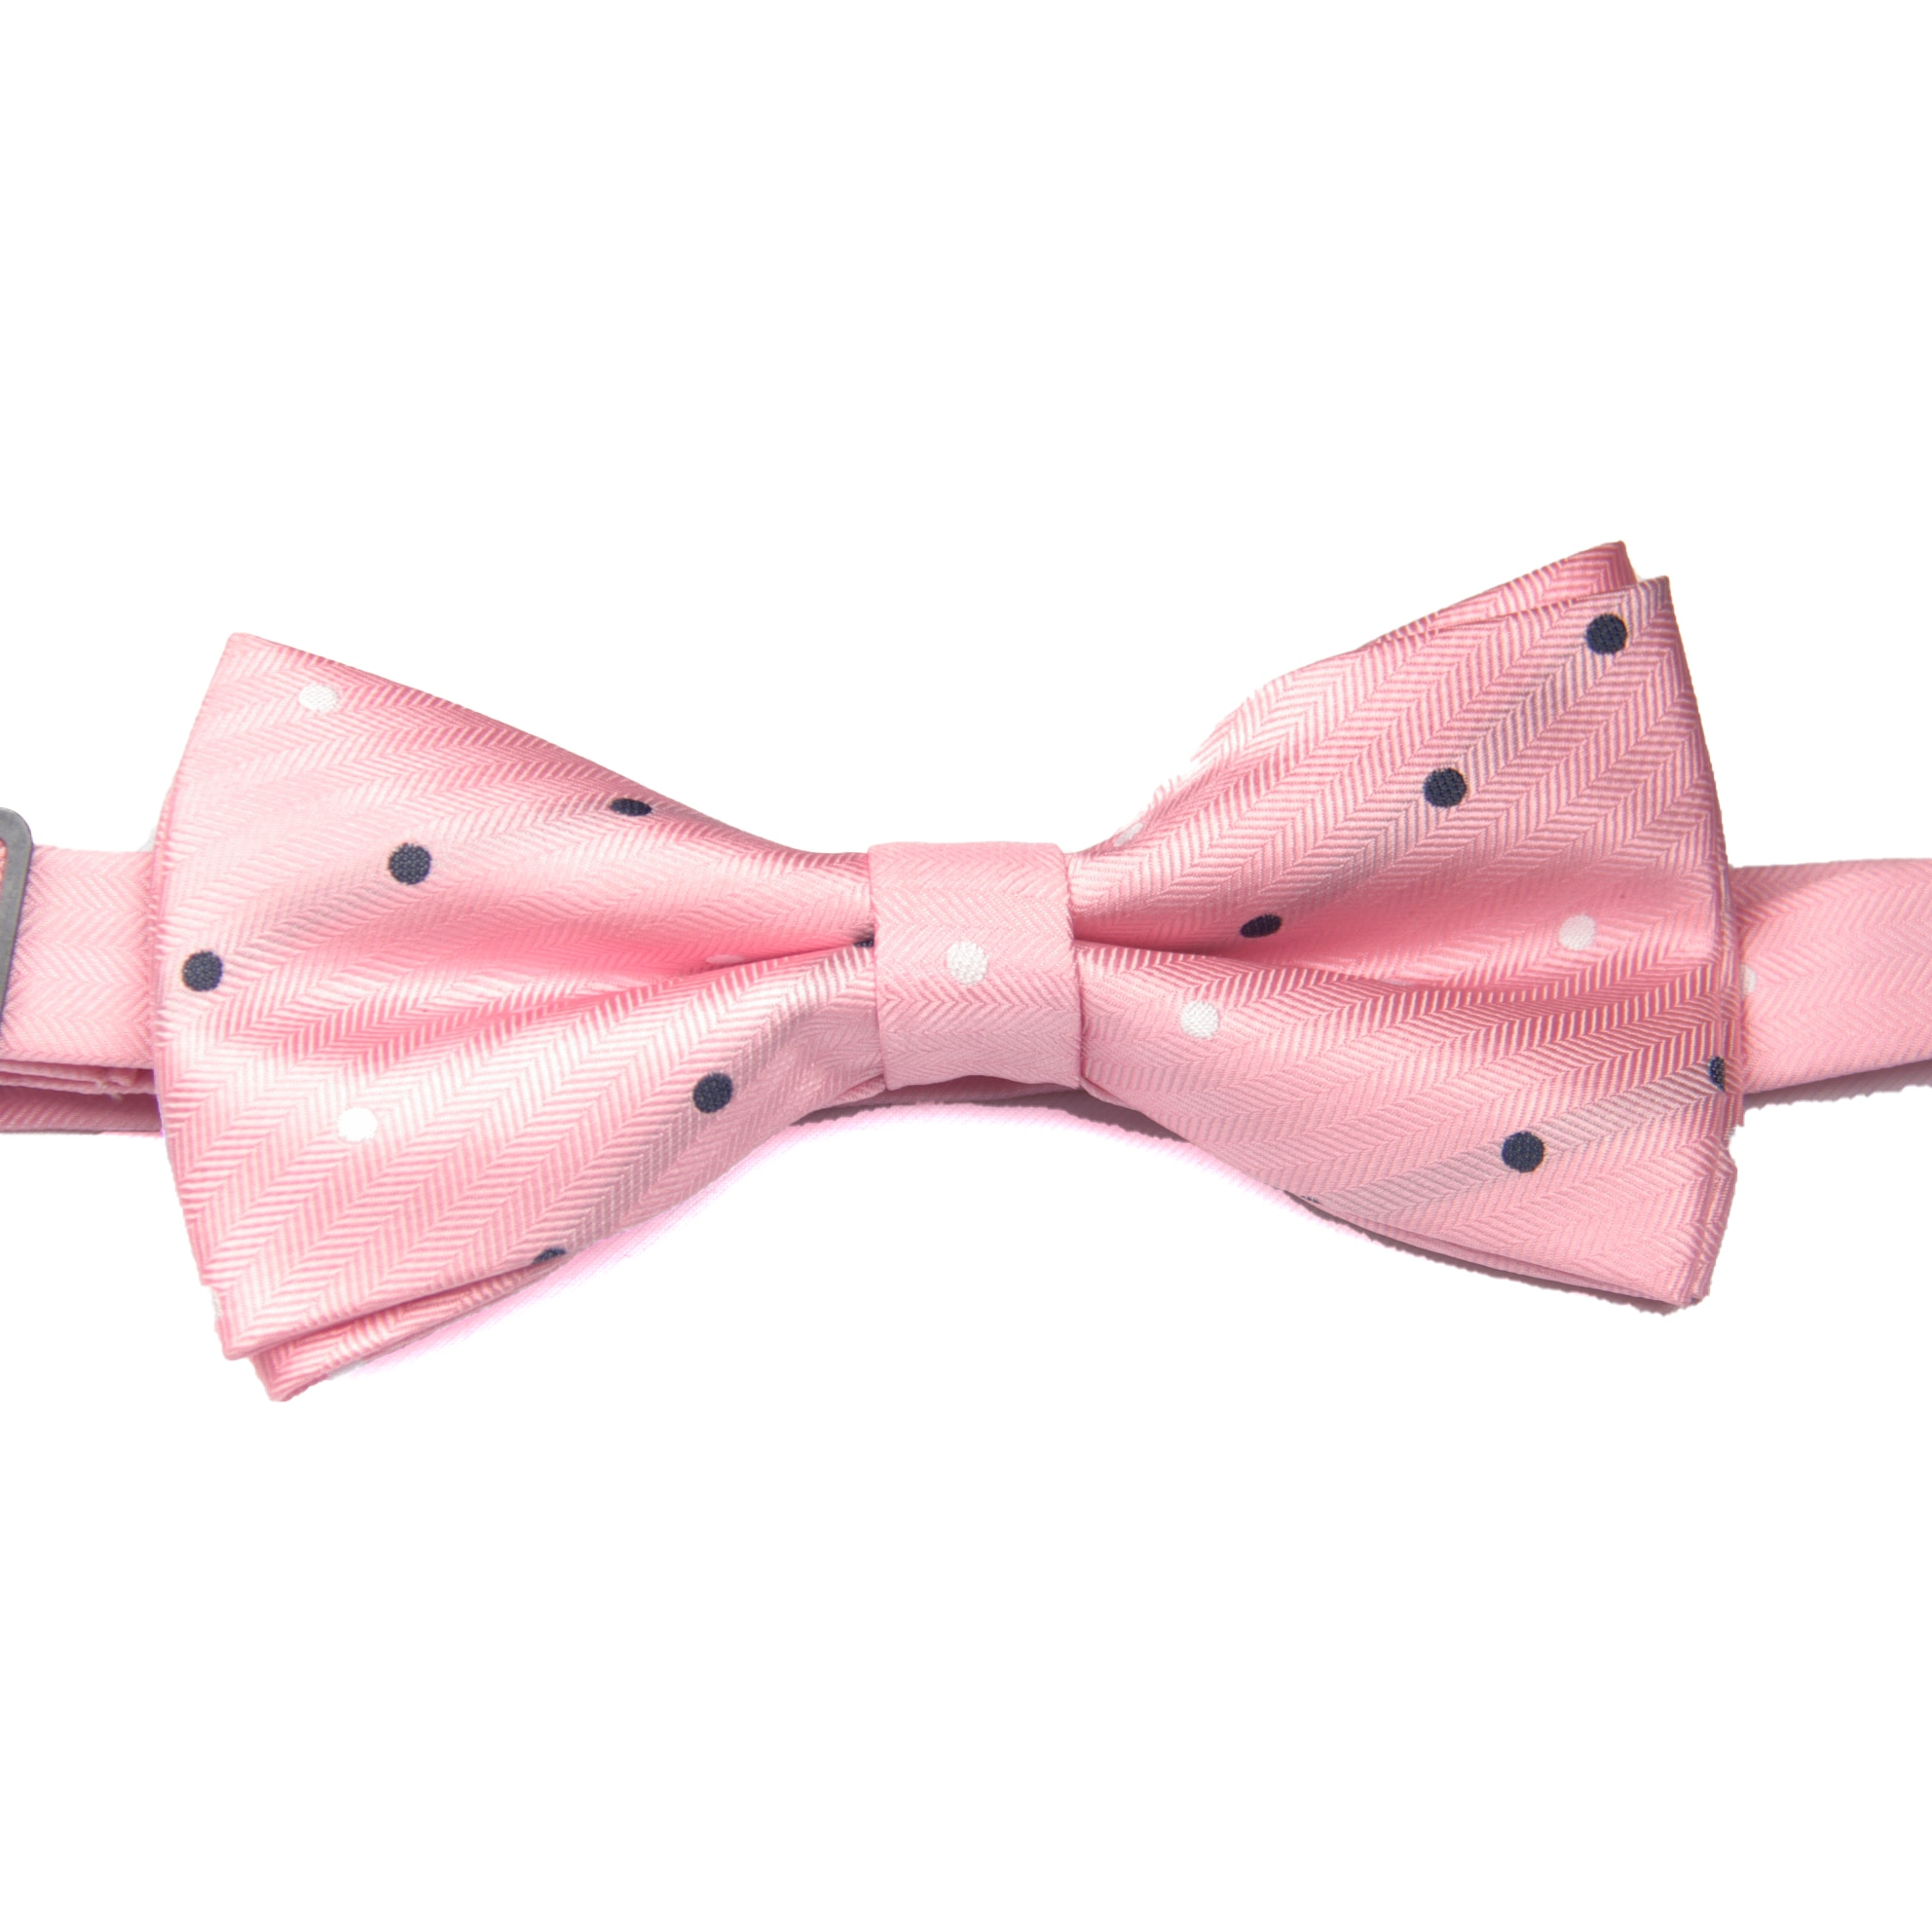 2019 pink patterned bow tie with patterns pre-tied bow ties bow tied front slim fitted tee